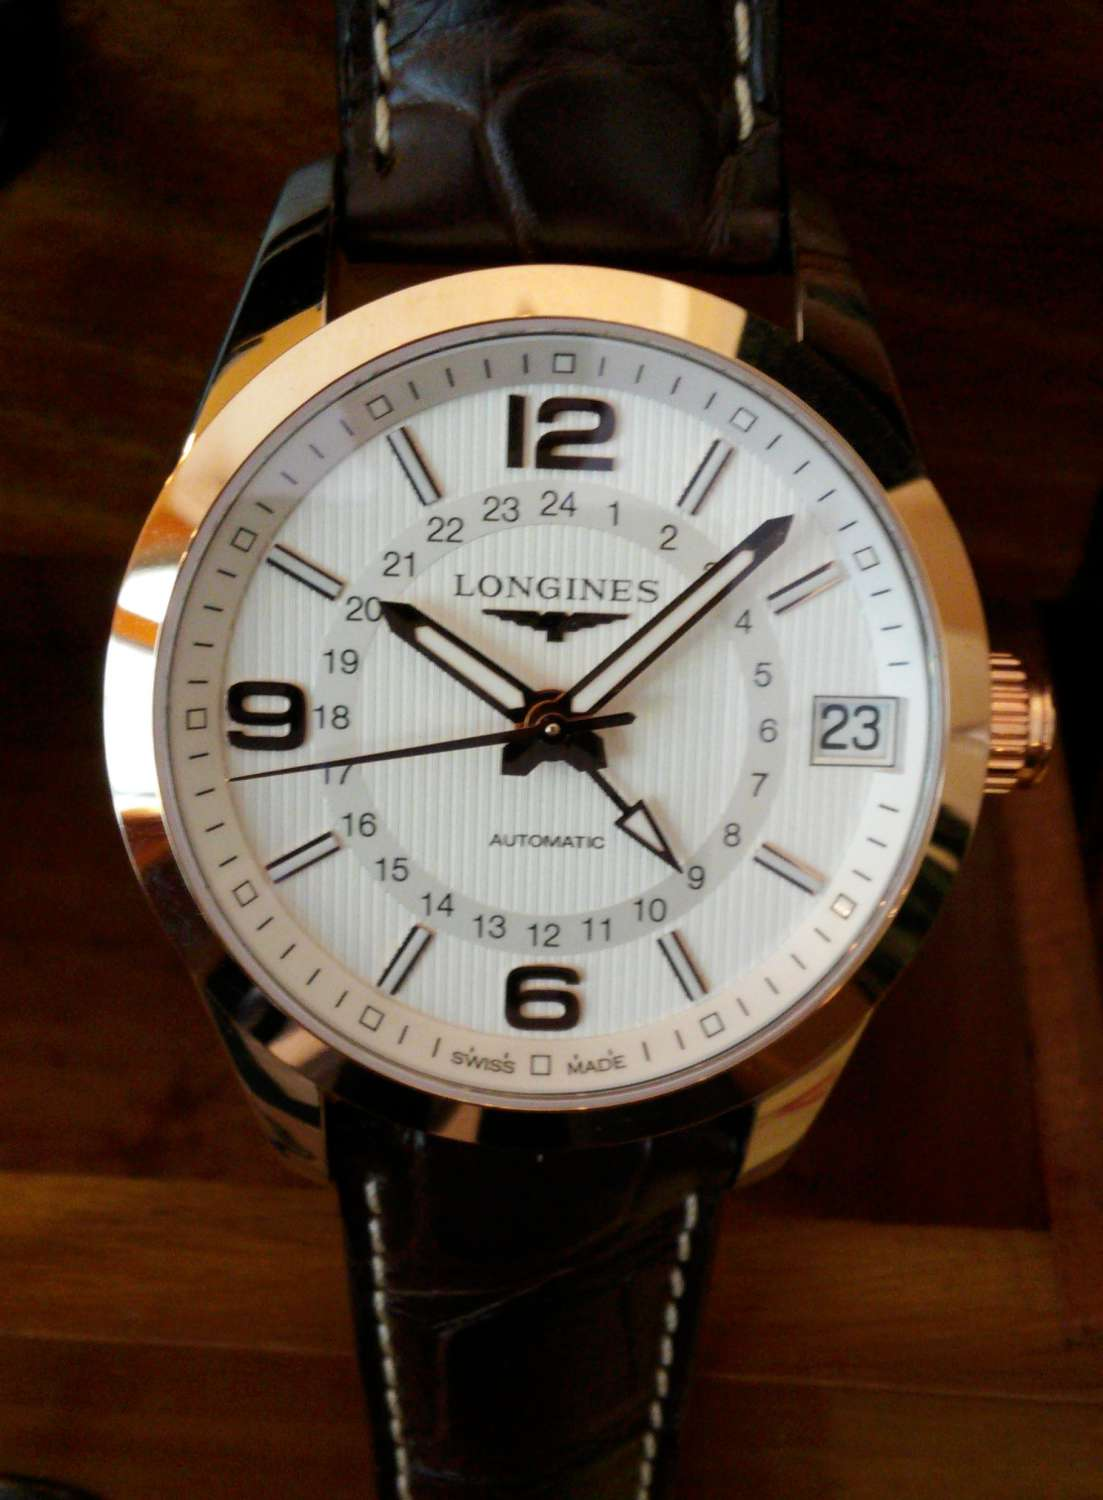 Longines replica watches for sale